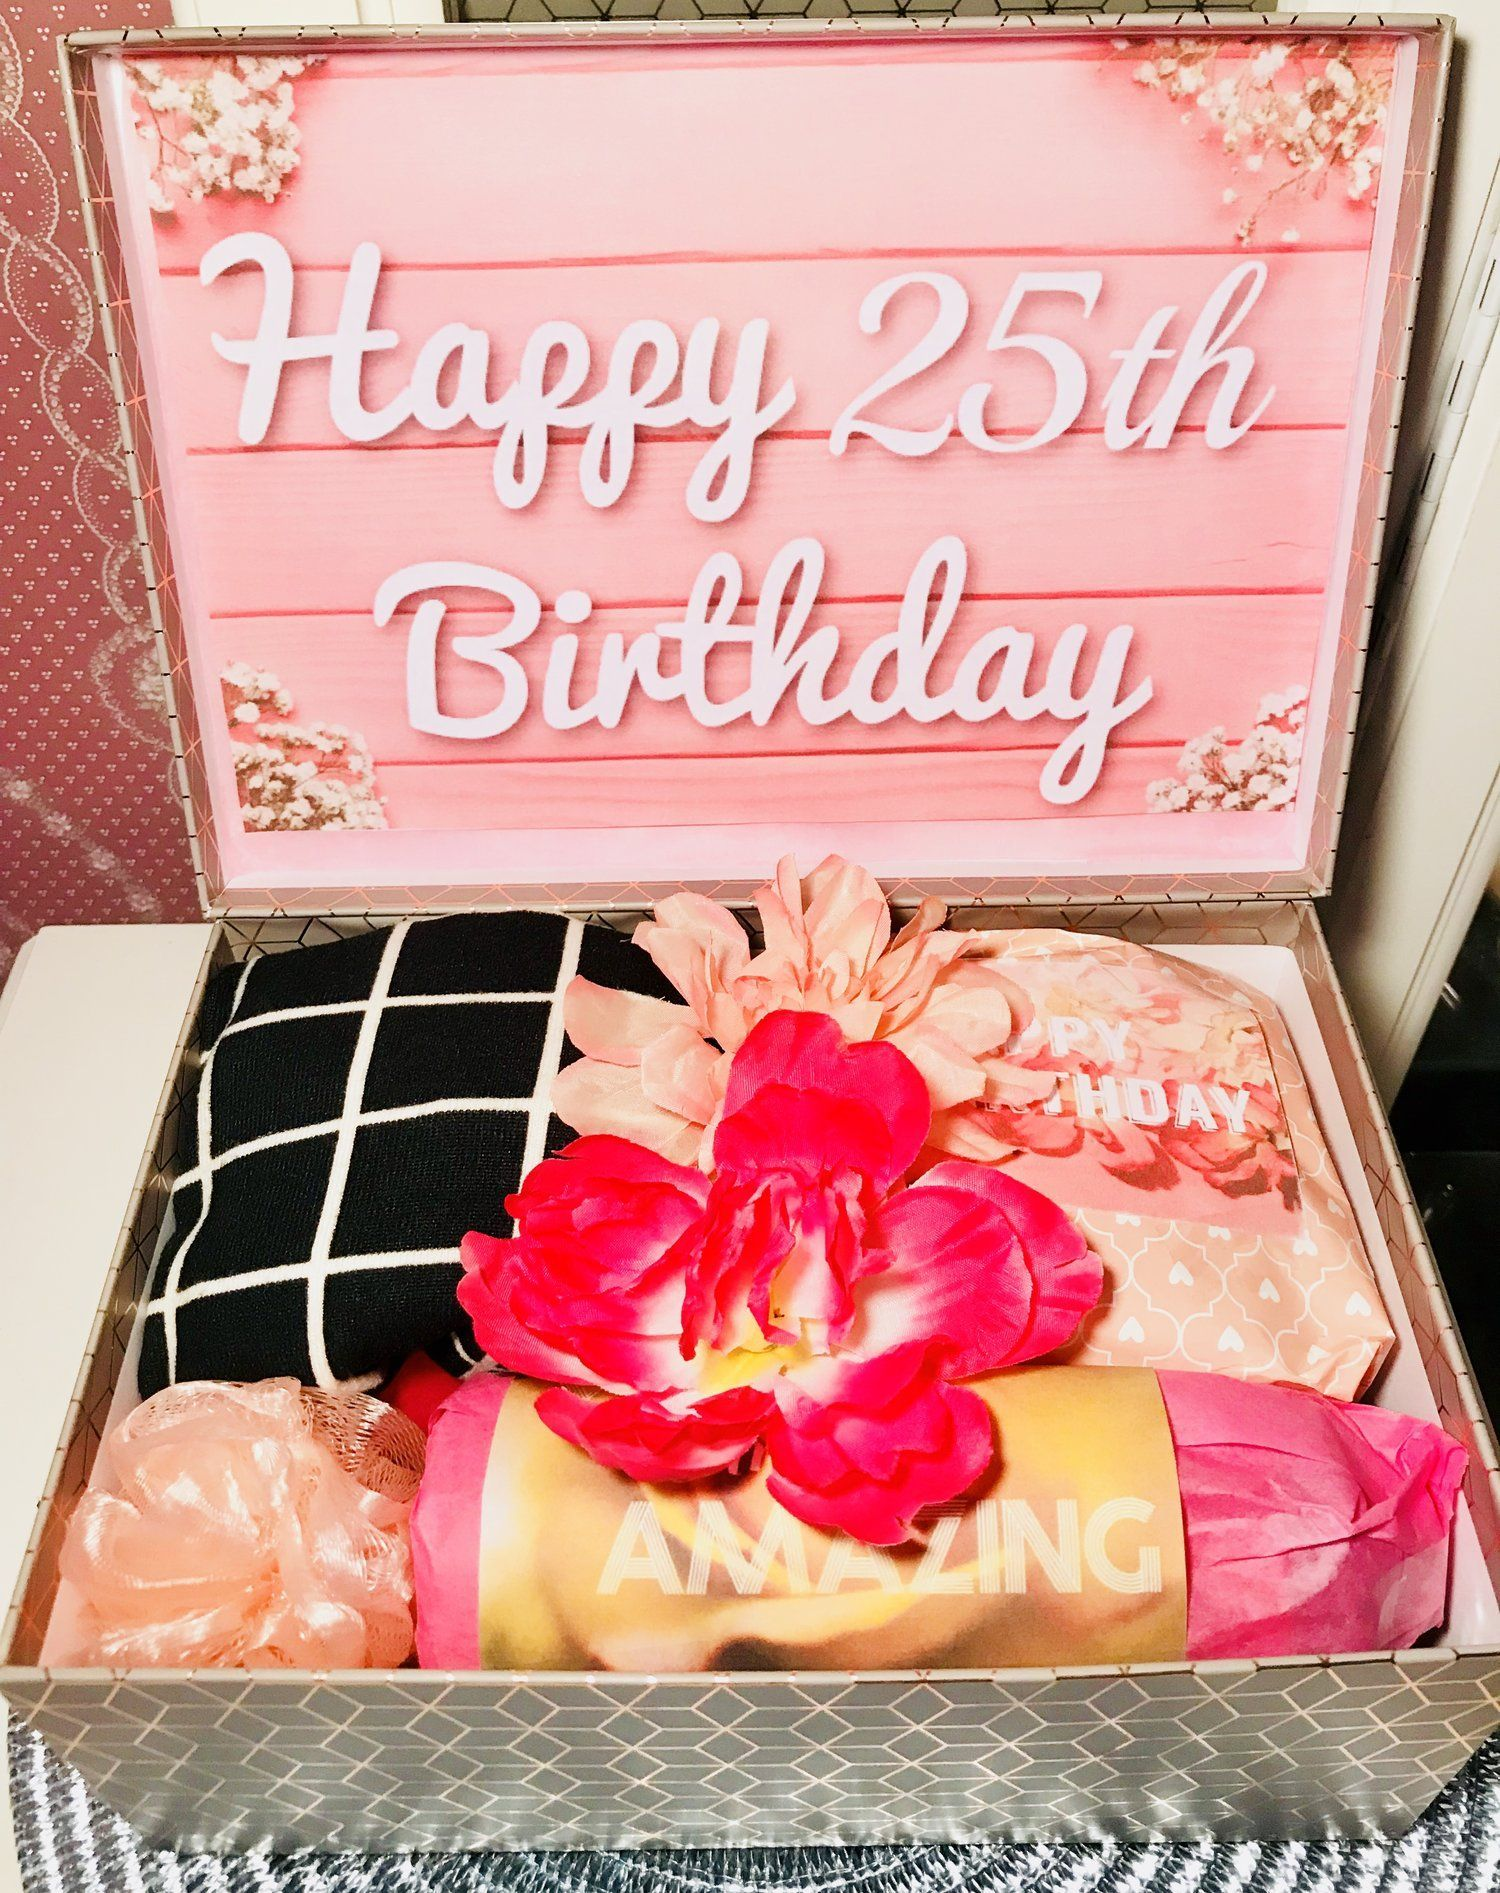 25th Birthday Youarebeautifulbox Care Package For Daughter Friend Gift Youarebeautifulbox 25th Birthday Gifts Birthday Care Packages Happy 25th Birthday